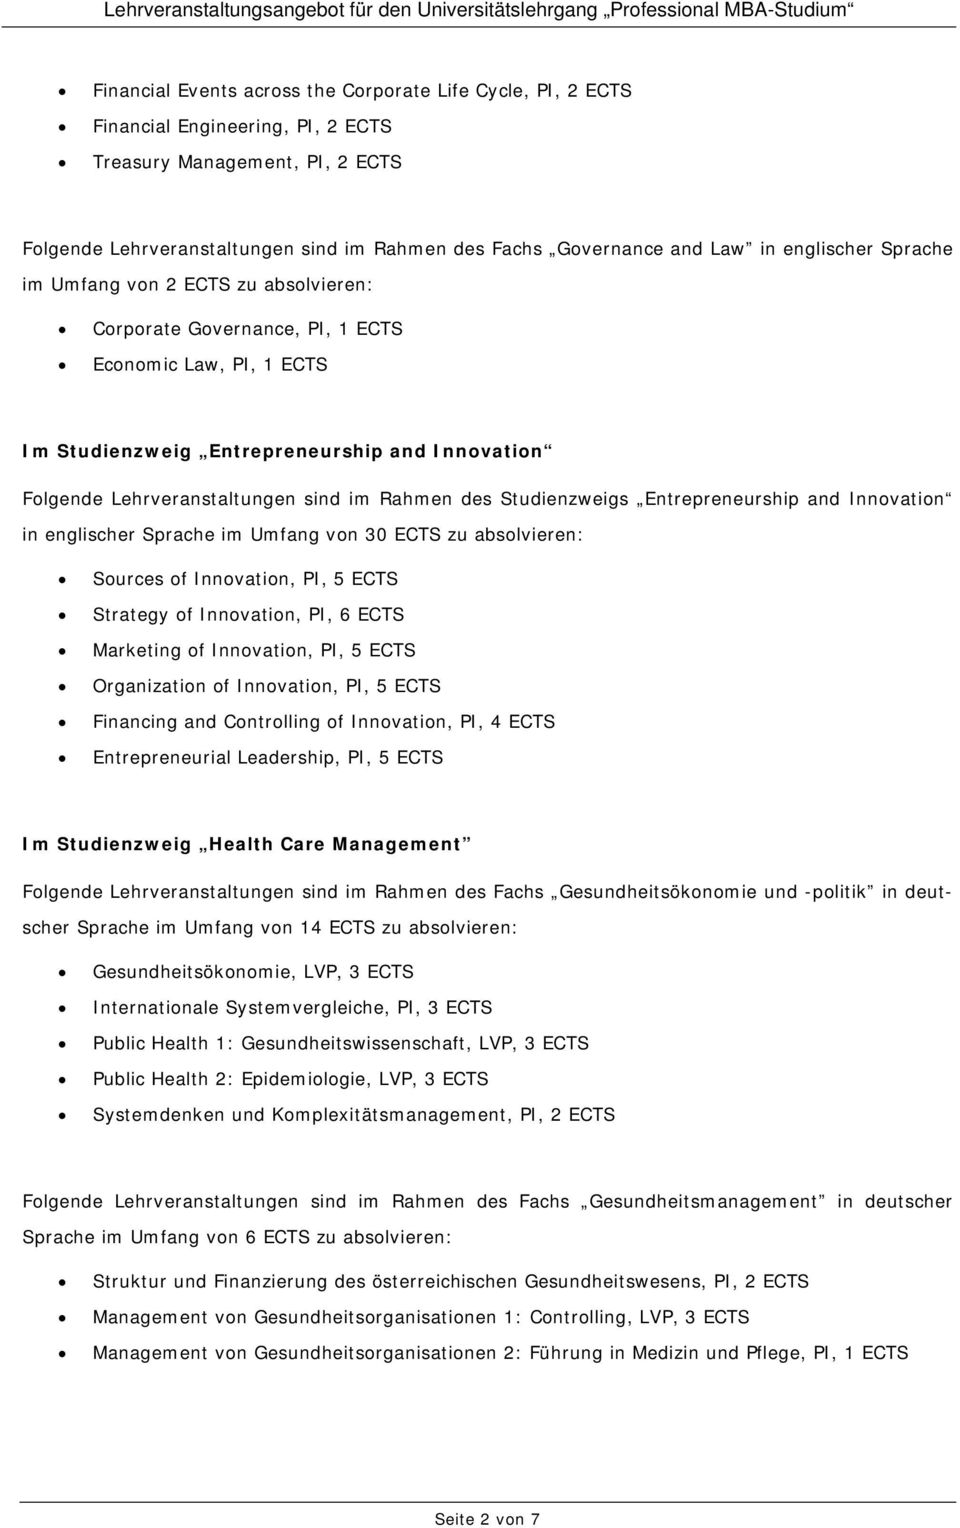 im Rahmen des Studienzweigs Entrepreneurship and Innovation in englischer Sprache im Umfang von 30 ECTS zu absolvieren: Sources of Innovation, PI, 5 ECTS Strategy of Innovation, PI, 6 ECTS Marketing